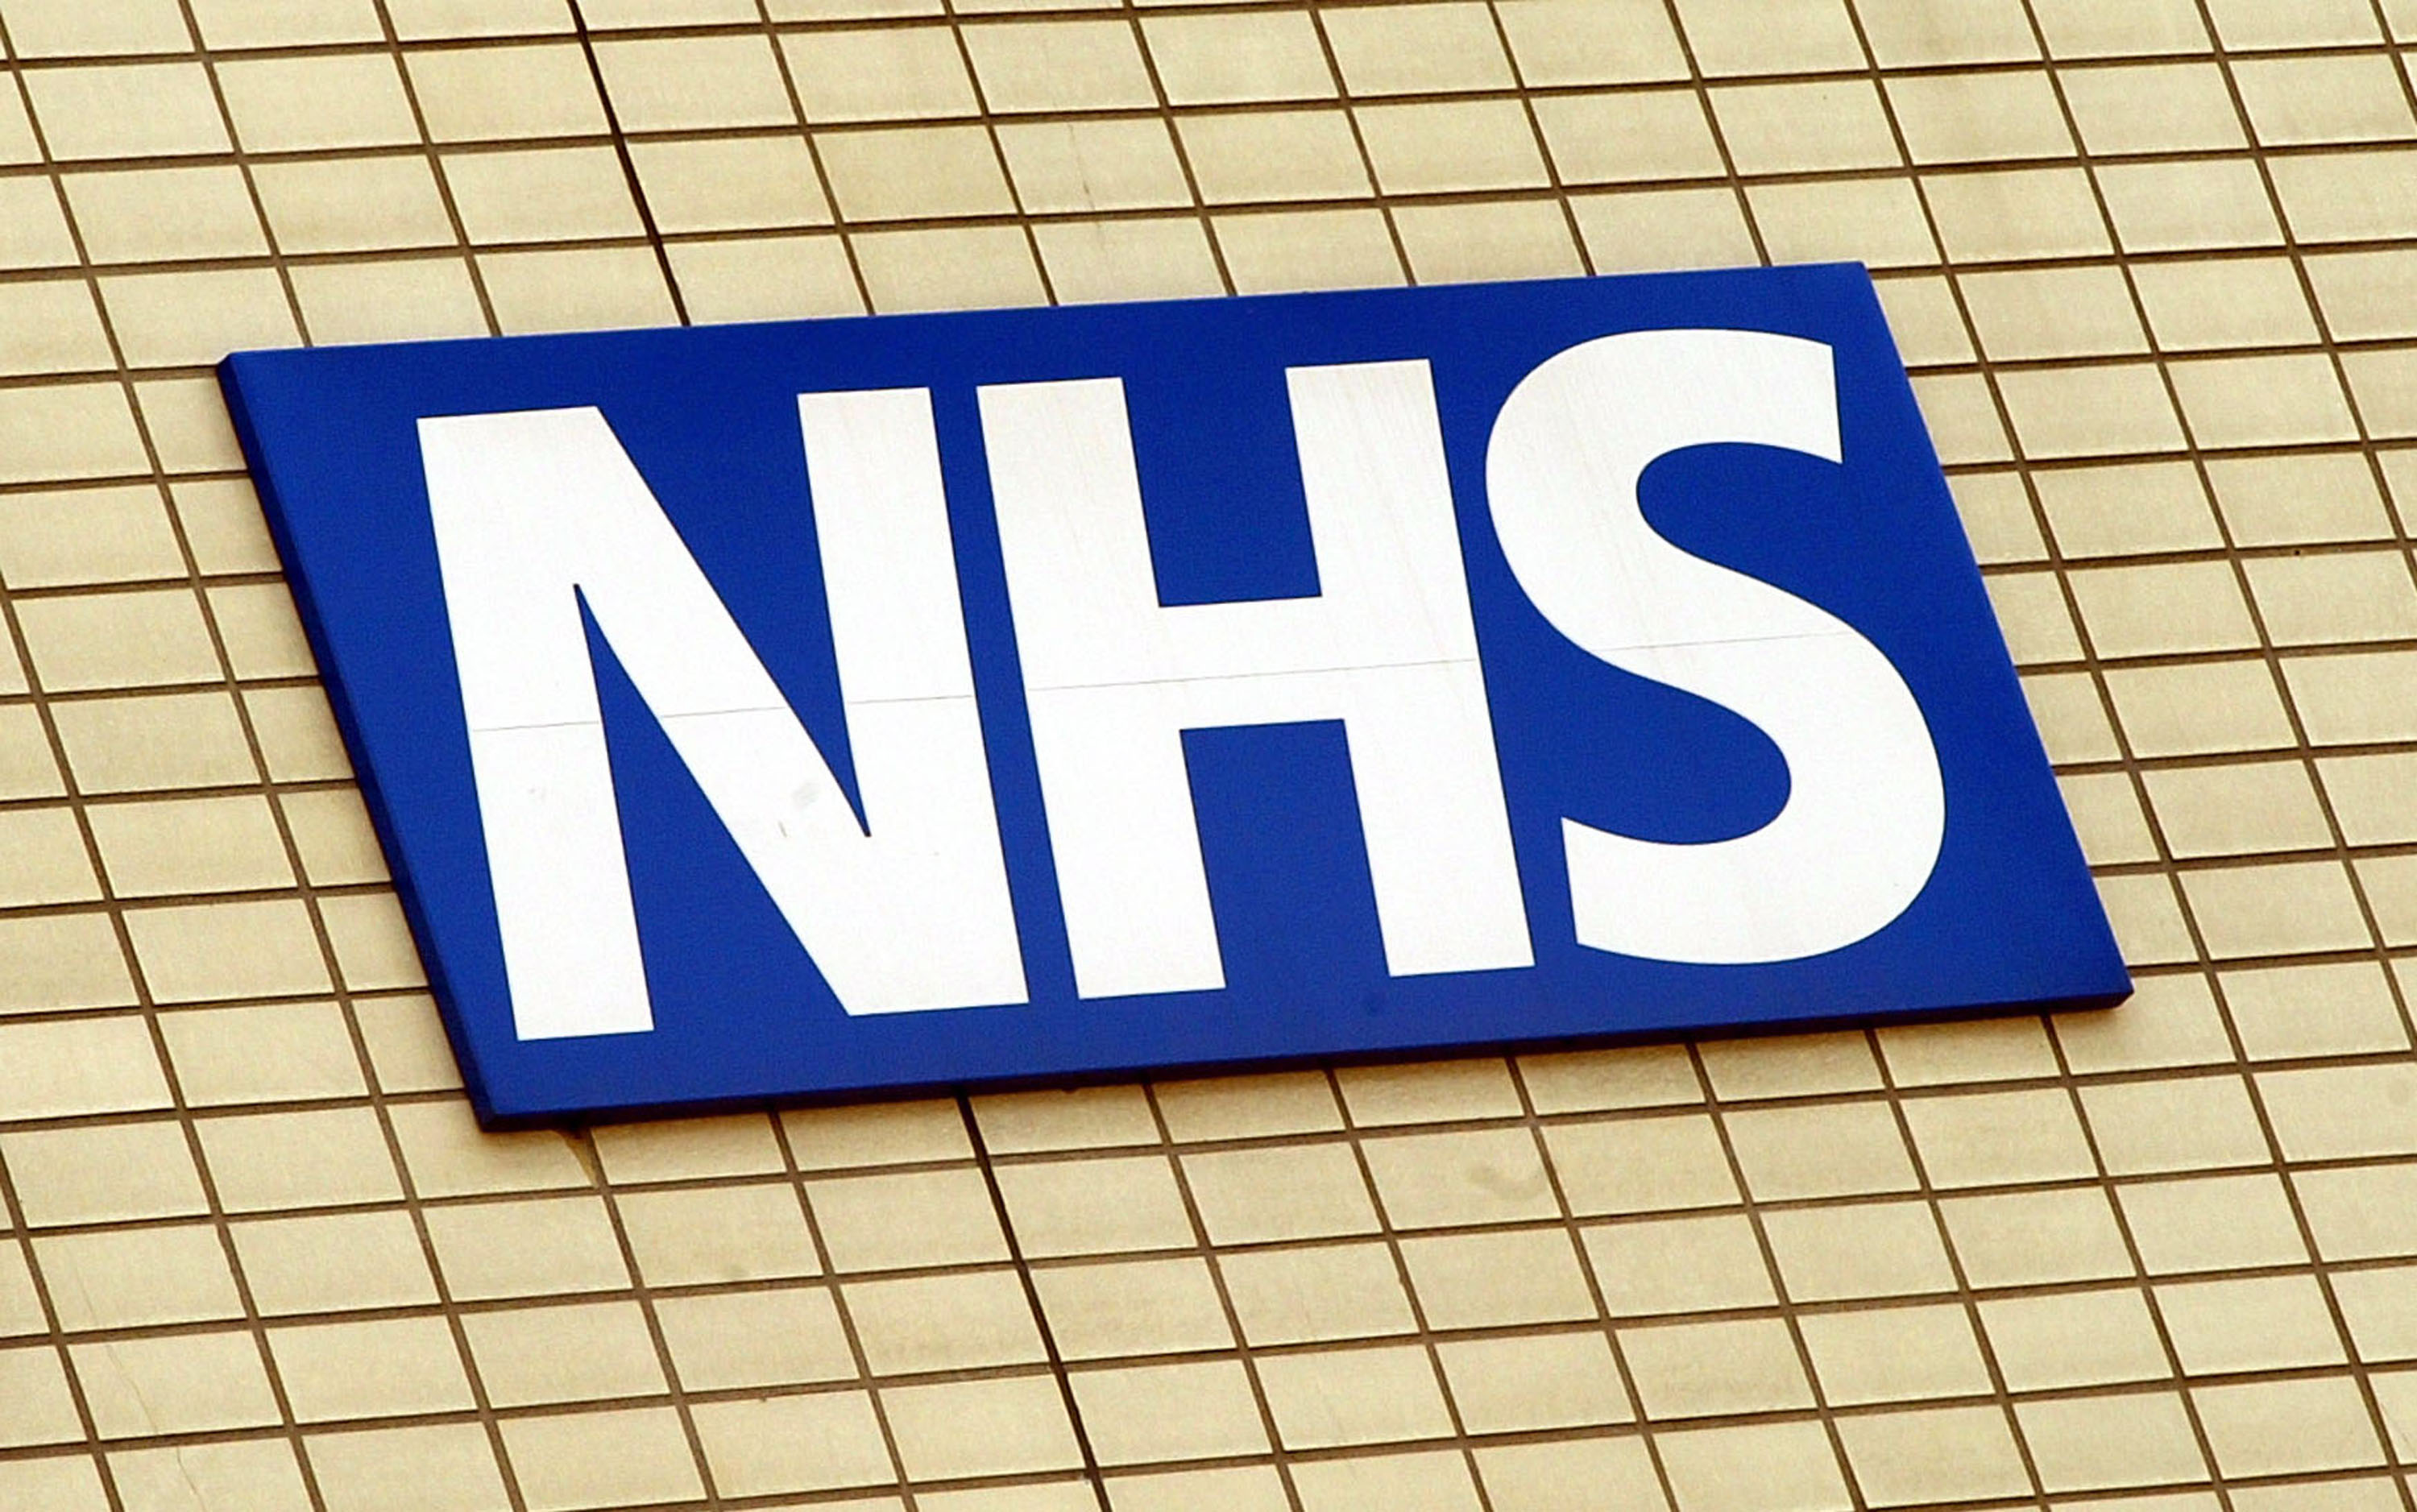 The National Health Service logo is shown on the wall outside St Thomas's Hospital in London, England May 7, 2003. (Scott Barbour/Getty Images)